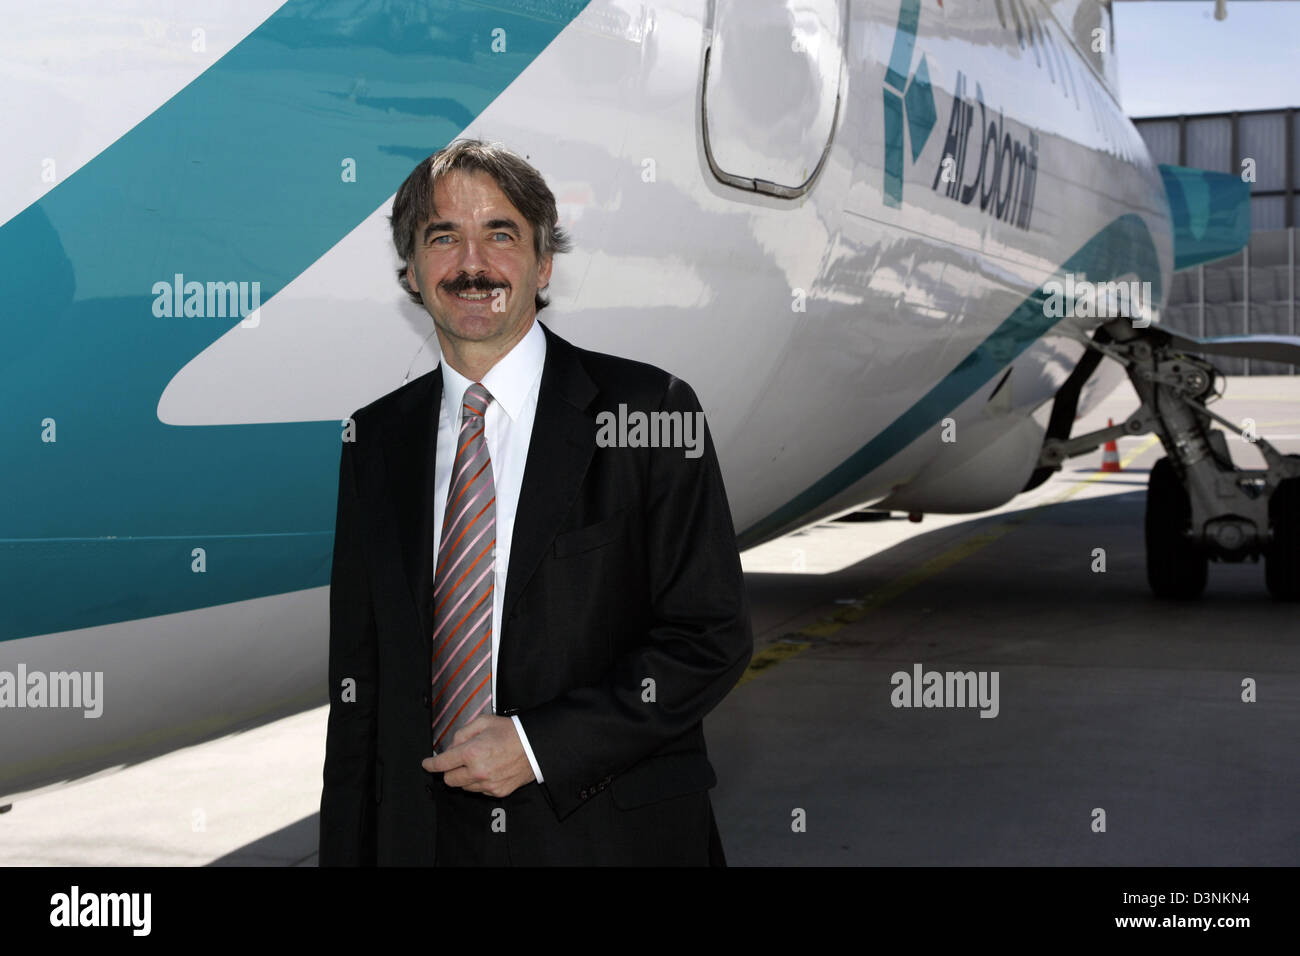 Air Dolomiti President and CEO Michael Andreas Kraus smiles during the christening of BAe 146-300 jet at Munich - Stock Image